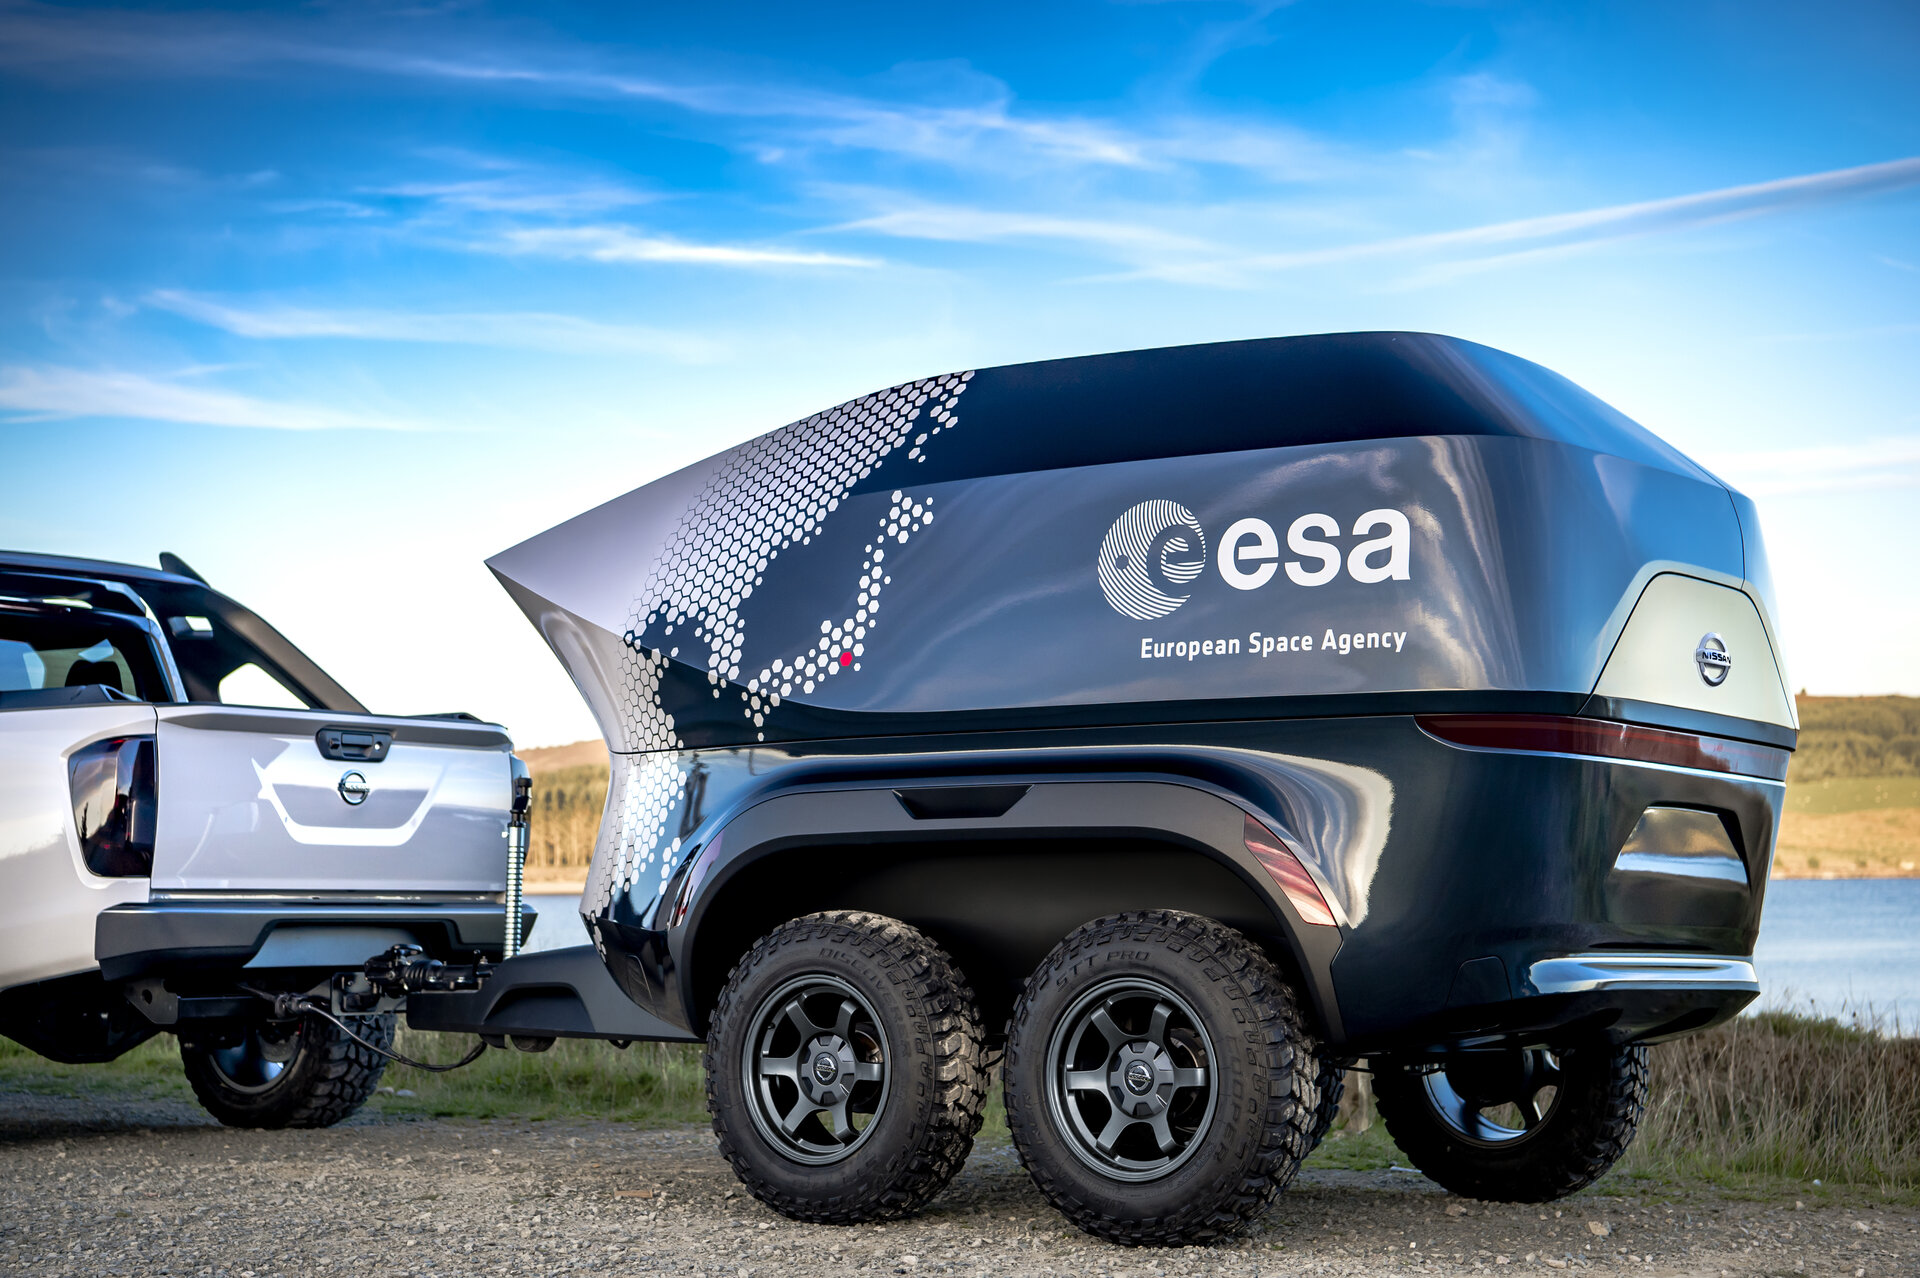 Esa Going Off Road In The Search For Dark Skies